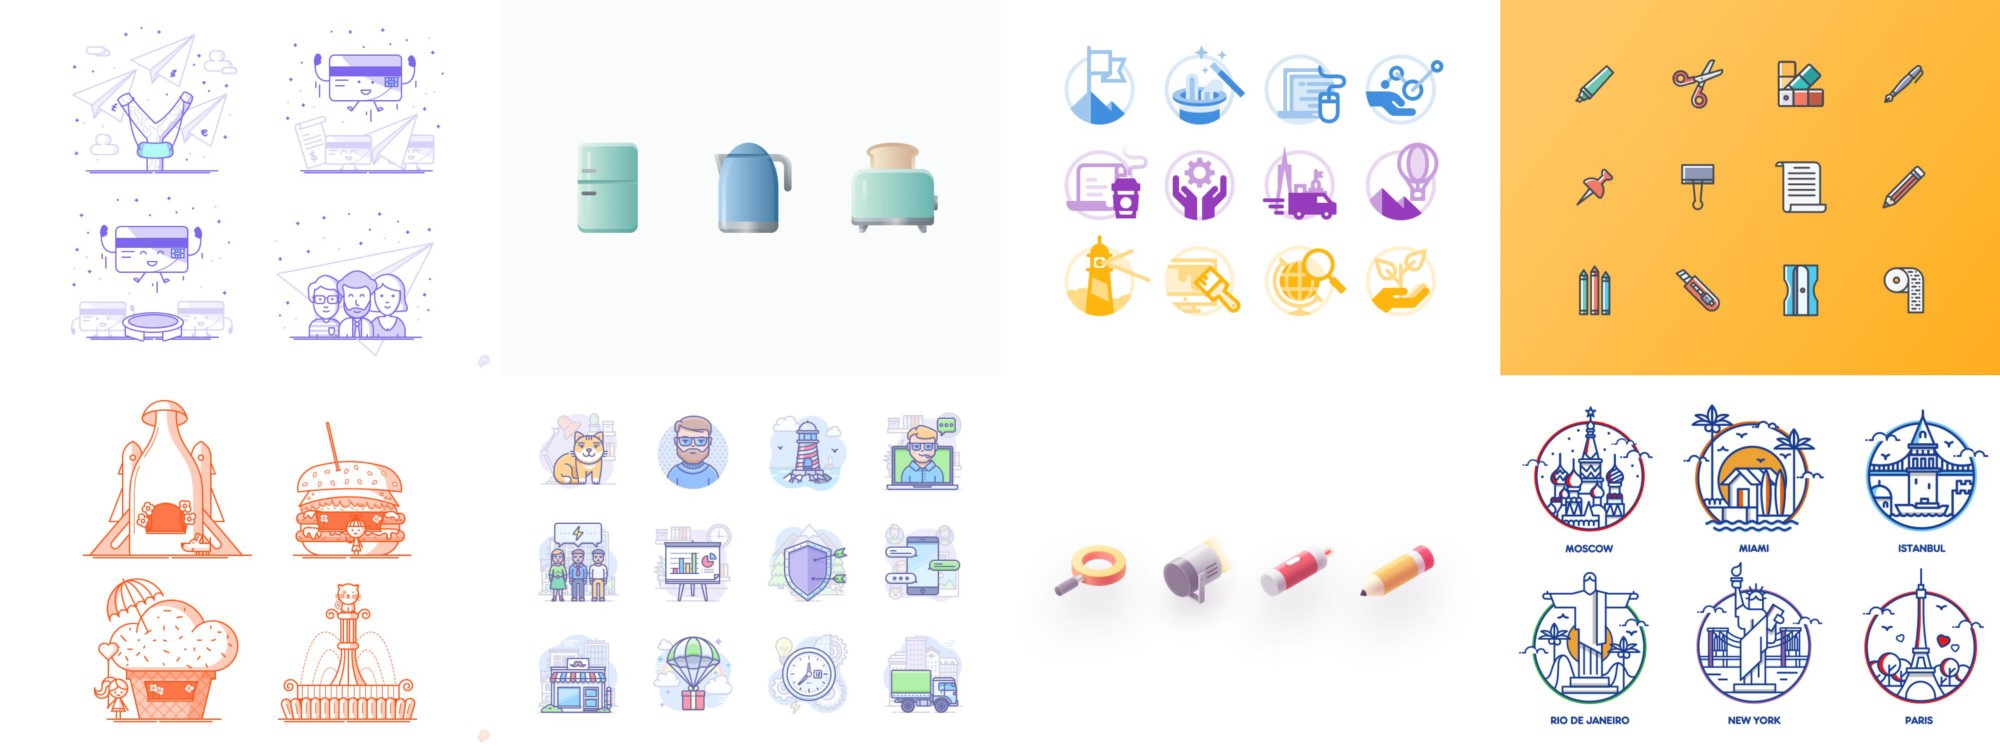 Heres The Second Article On Our Blog Series Icon Design Inspiration Easter Is Coming Soon So Lets Start With Fabulous Icons By Anna Sereda